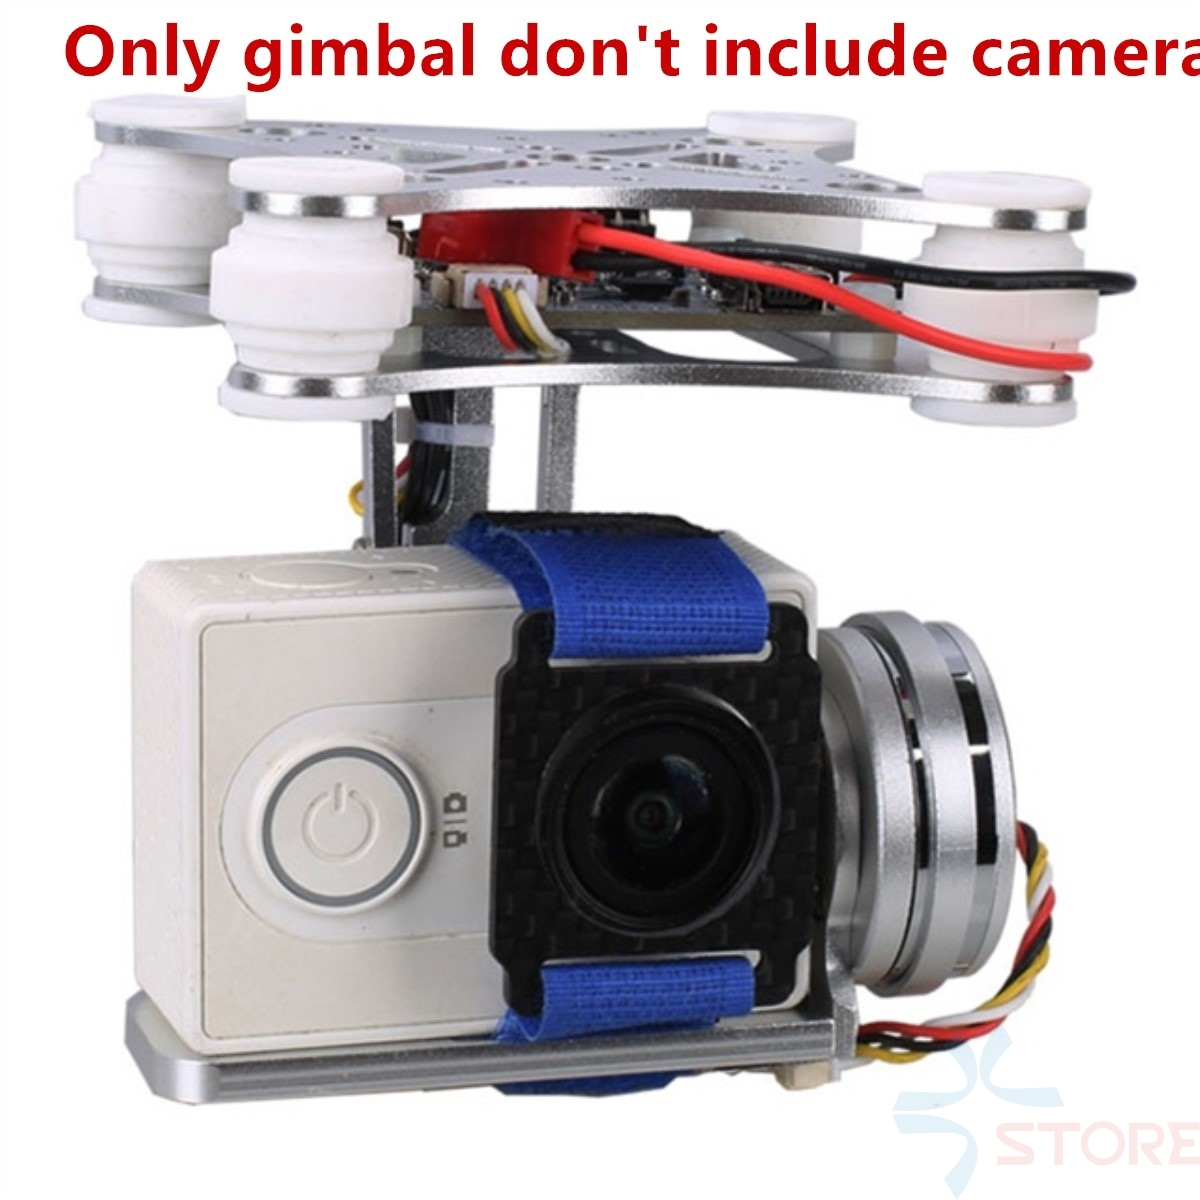 2 Aixs 2D Brushless Camera Gimbal for Gopro SJCAM XIAOMI YI Action Camera Eken F450 F550 S500 FPV Drone Multirotor Quadrocopter 2 aixs 2d brushless camera gimbal for sjcam gopro xiaomi yi action camera fpv drone multirotor quadrocopter s500 f450 f550